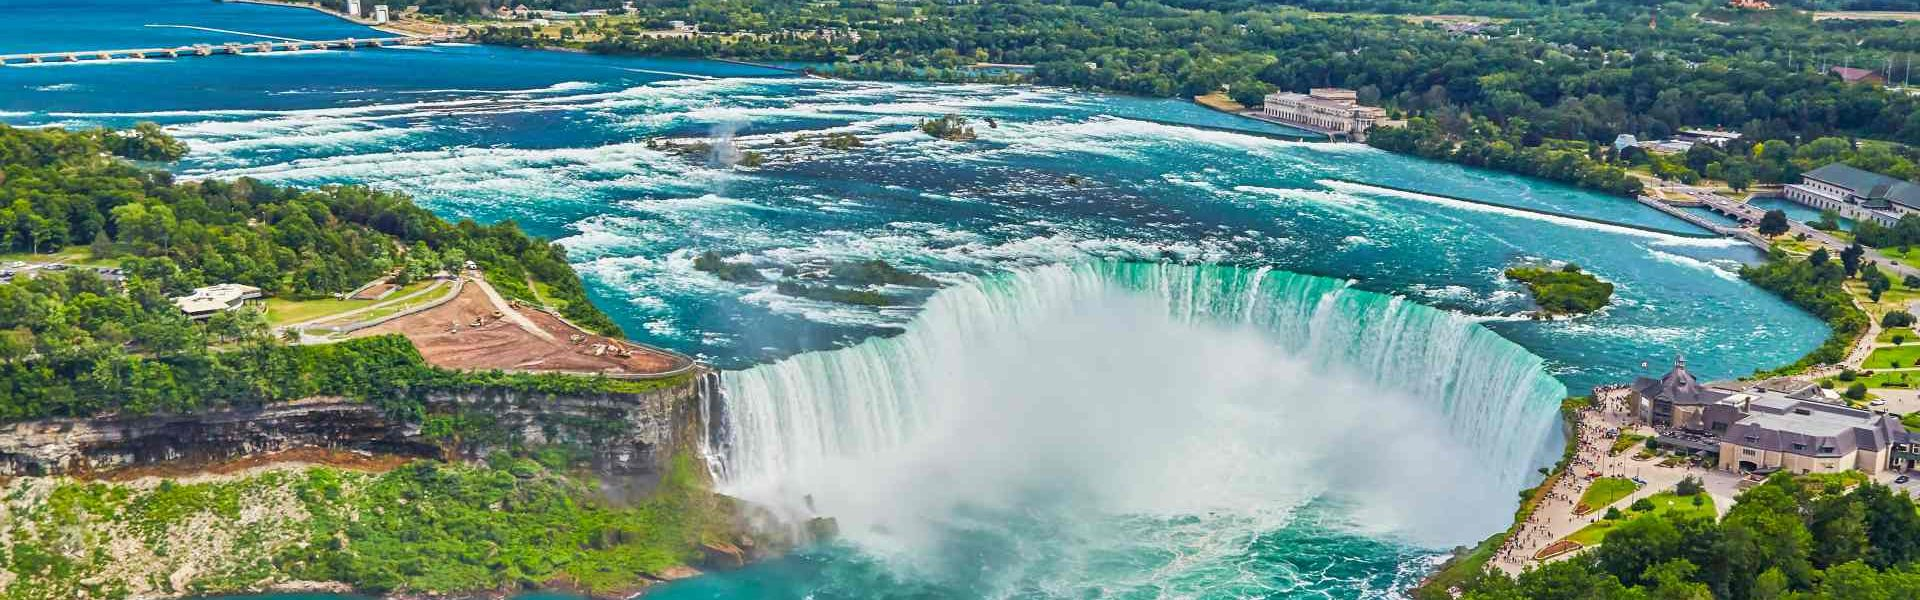 Horseshoe falls with boat,Niagara Falls